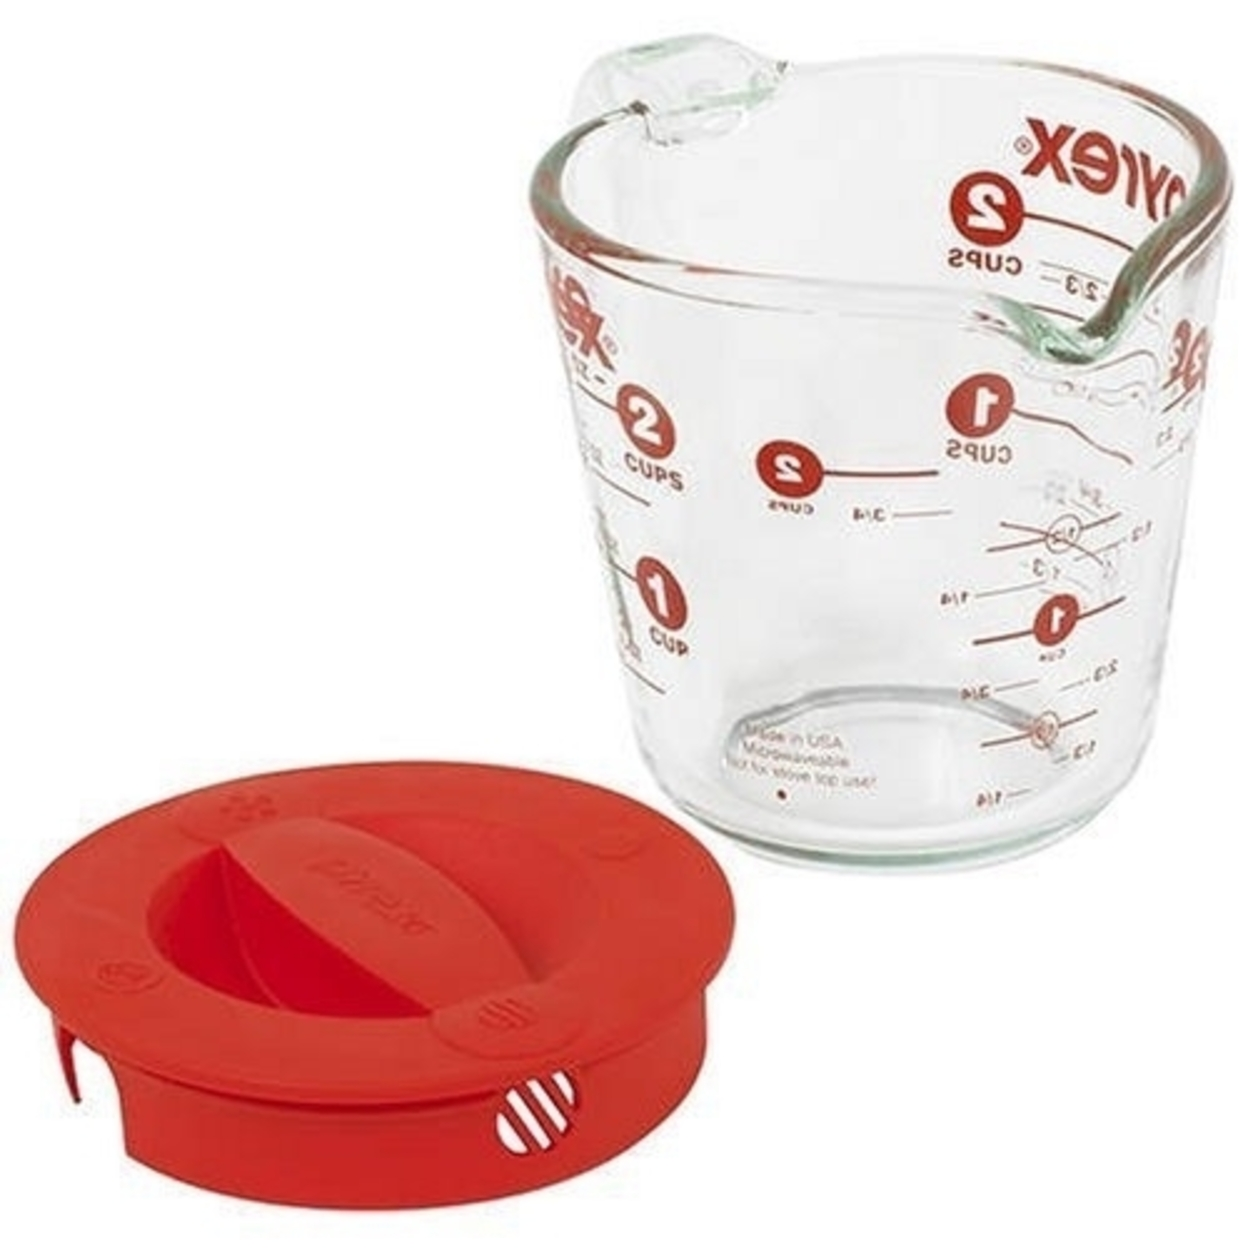 Pyrex 1055163 2-Cup Measuring Cup with Lid 596e2a442a00e4090450caa2